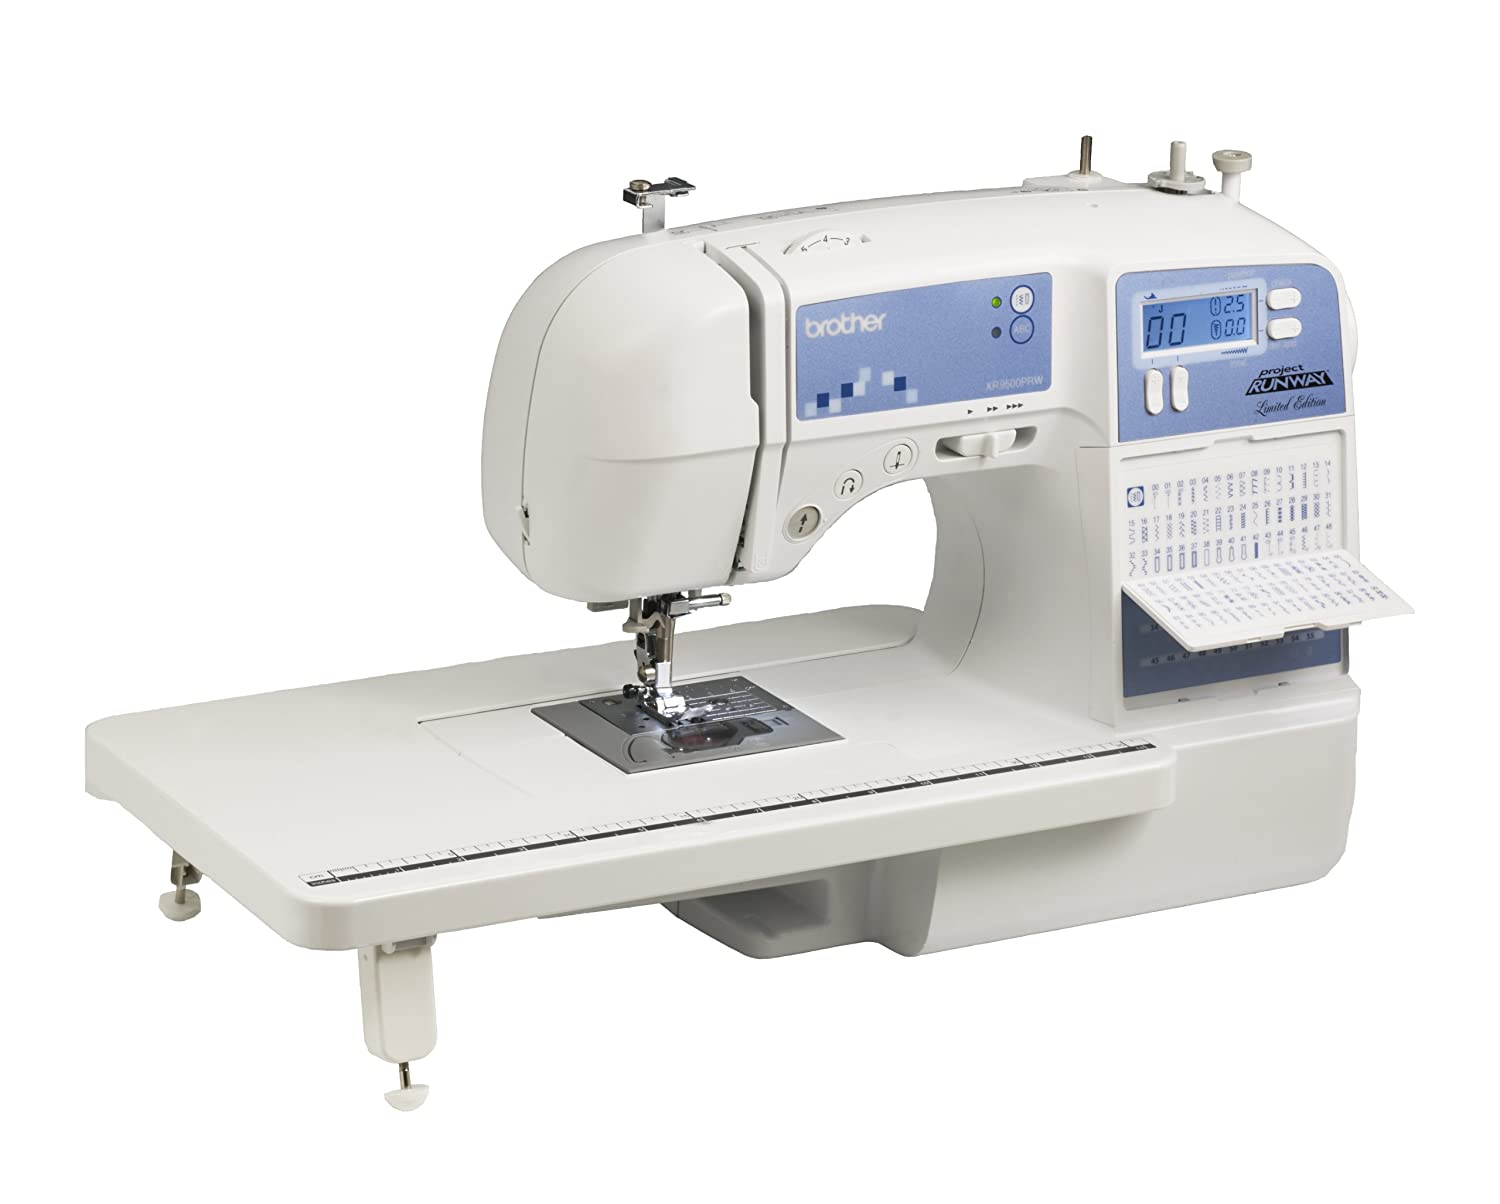 Brother-XR9500PRW-Sewing-Machine-ver-2